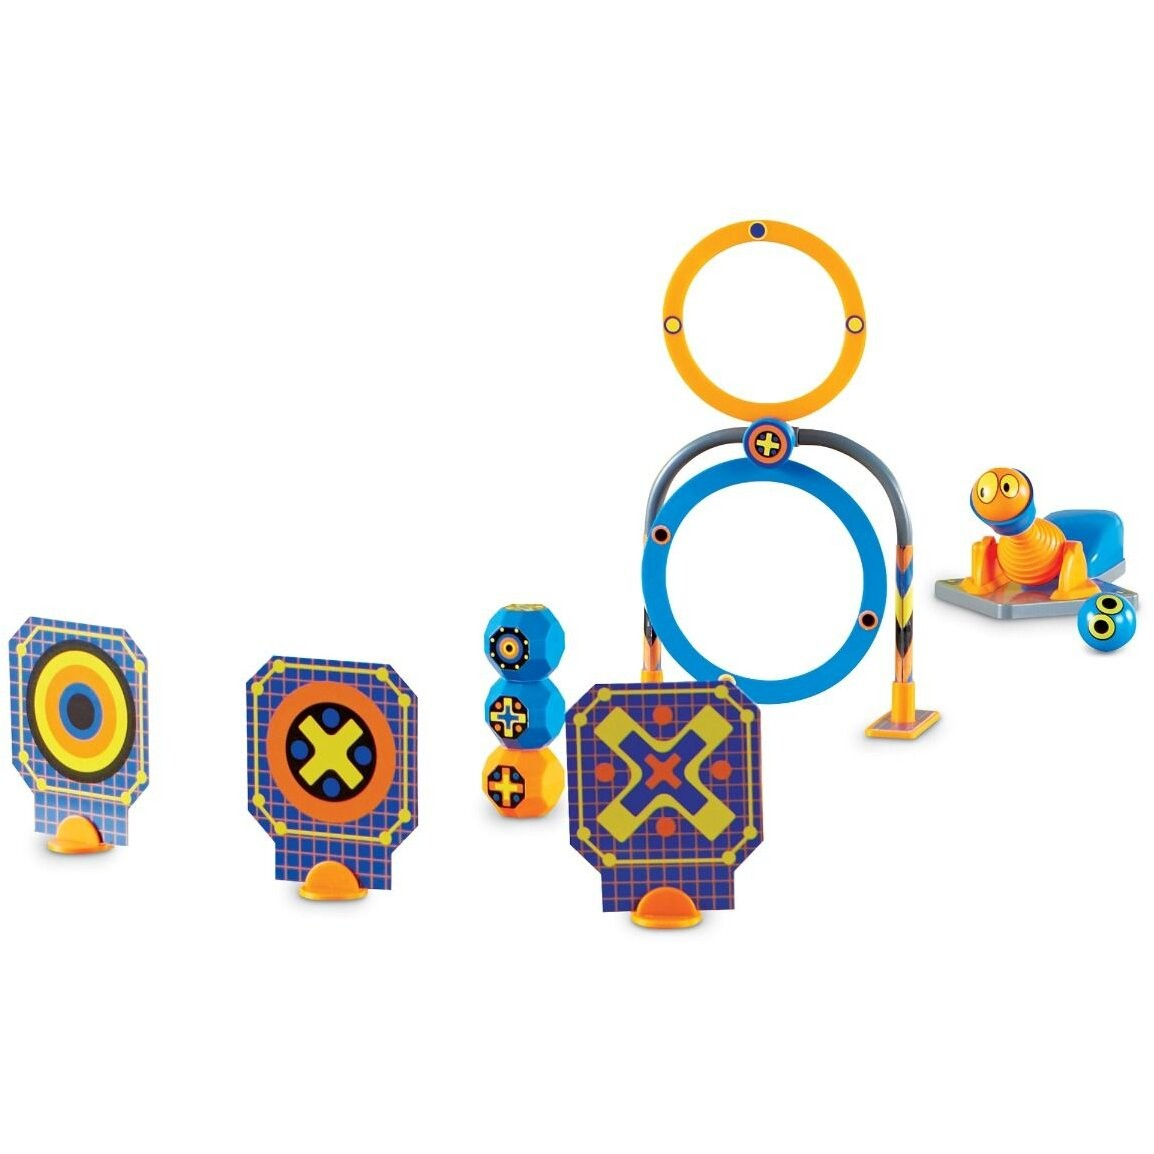 Turbo Pop - Jucarie STEM copii - Learning Resources UK 4